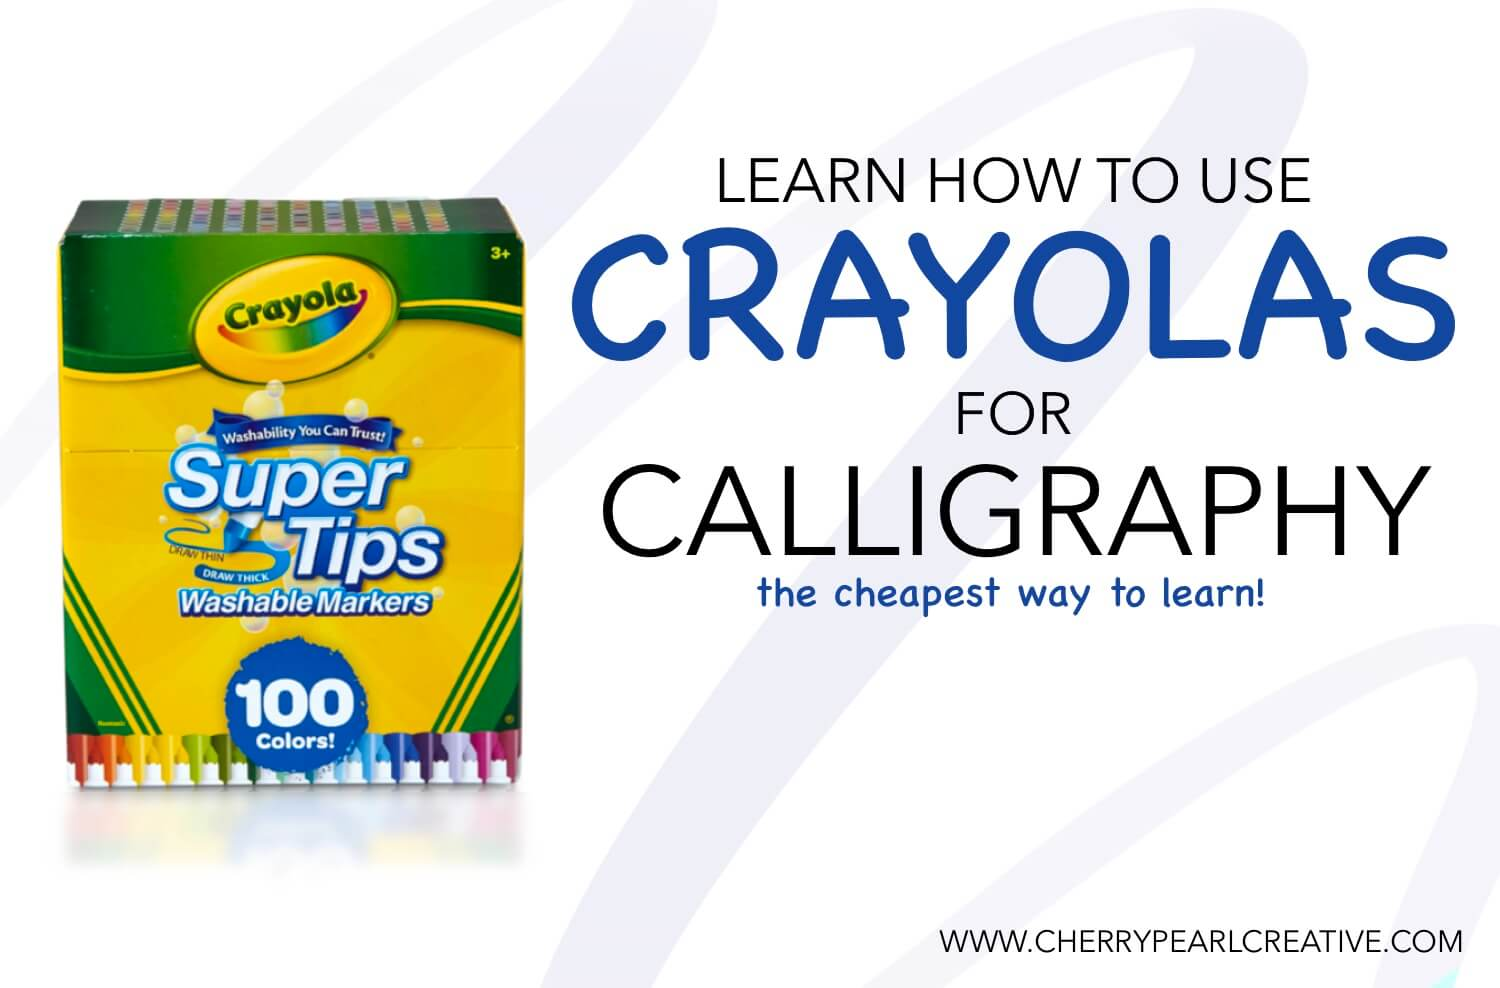 Calligraphy with a Crayola!